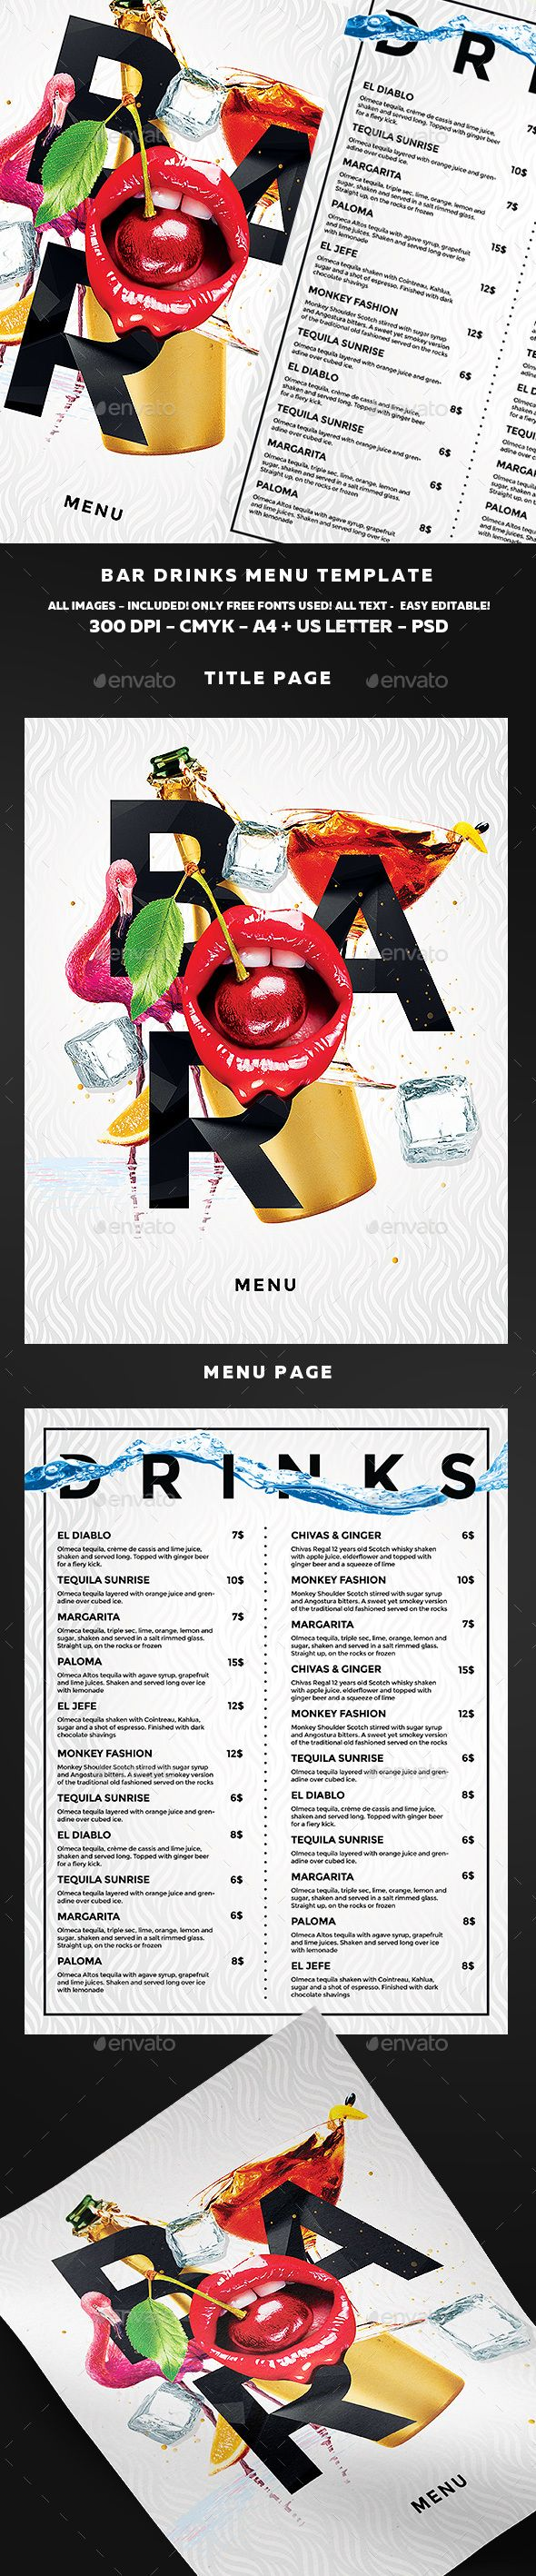 Drinks Menu Template PSD. Download here: https://graphicriver.net/item/drinks-menu-template/16929021?ref=ksioks